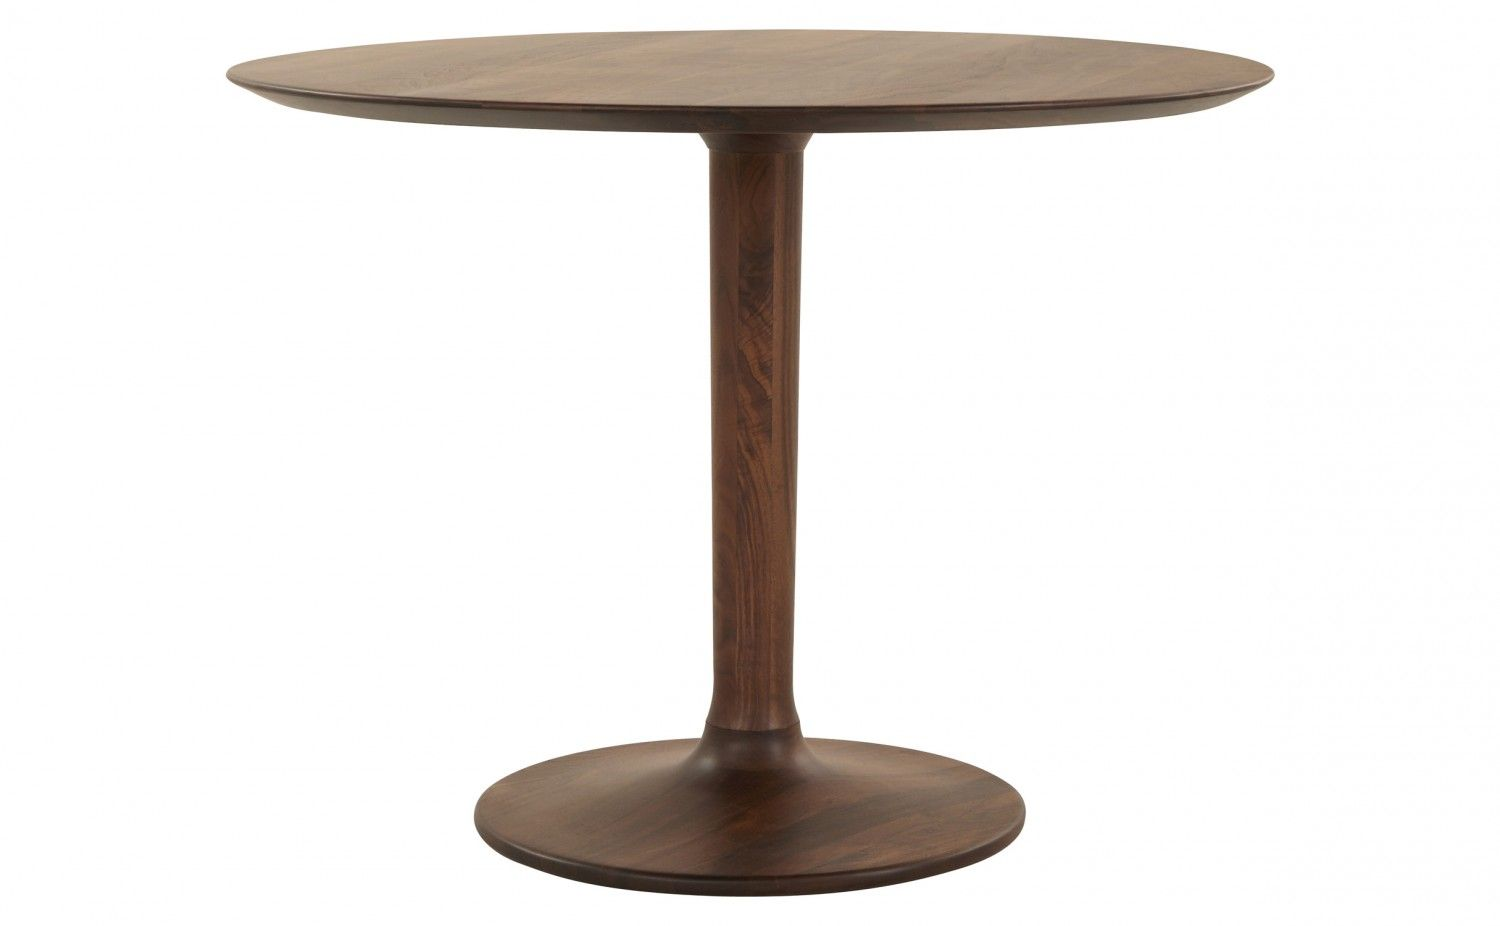 Our Hyde Table Is Vaguely Reminiscent Of The Iconic Mid Century Pedestal Design So Simple And Streamlined That Most Any Dining Chair Style